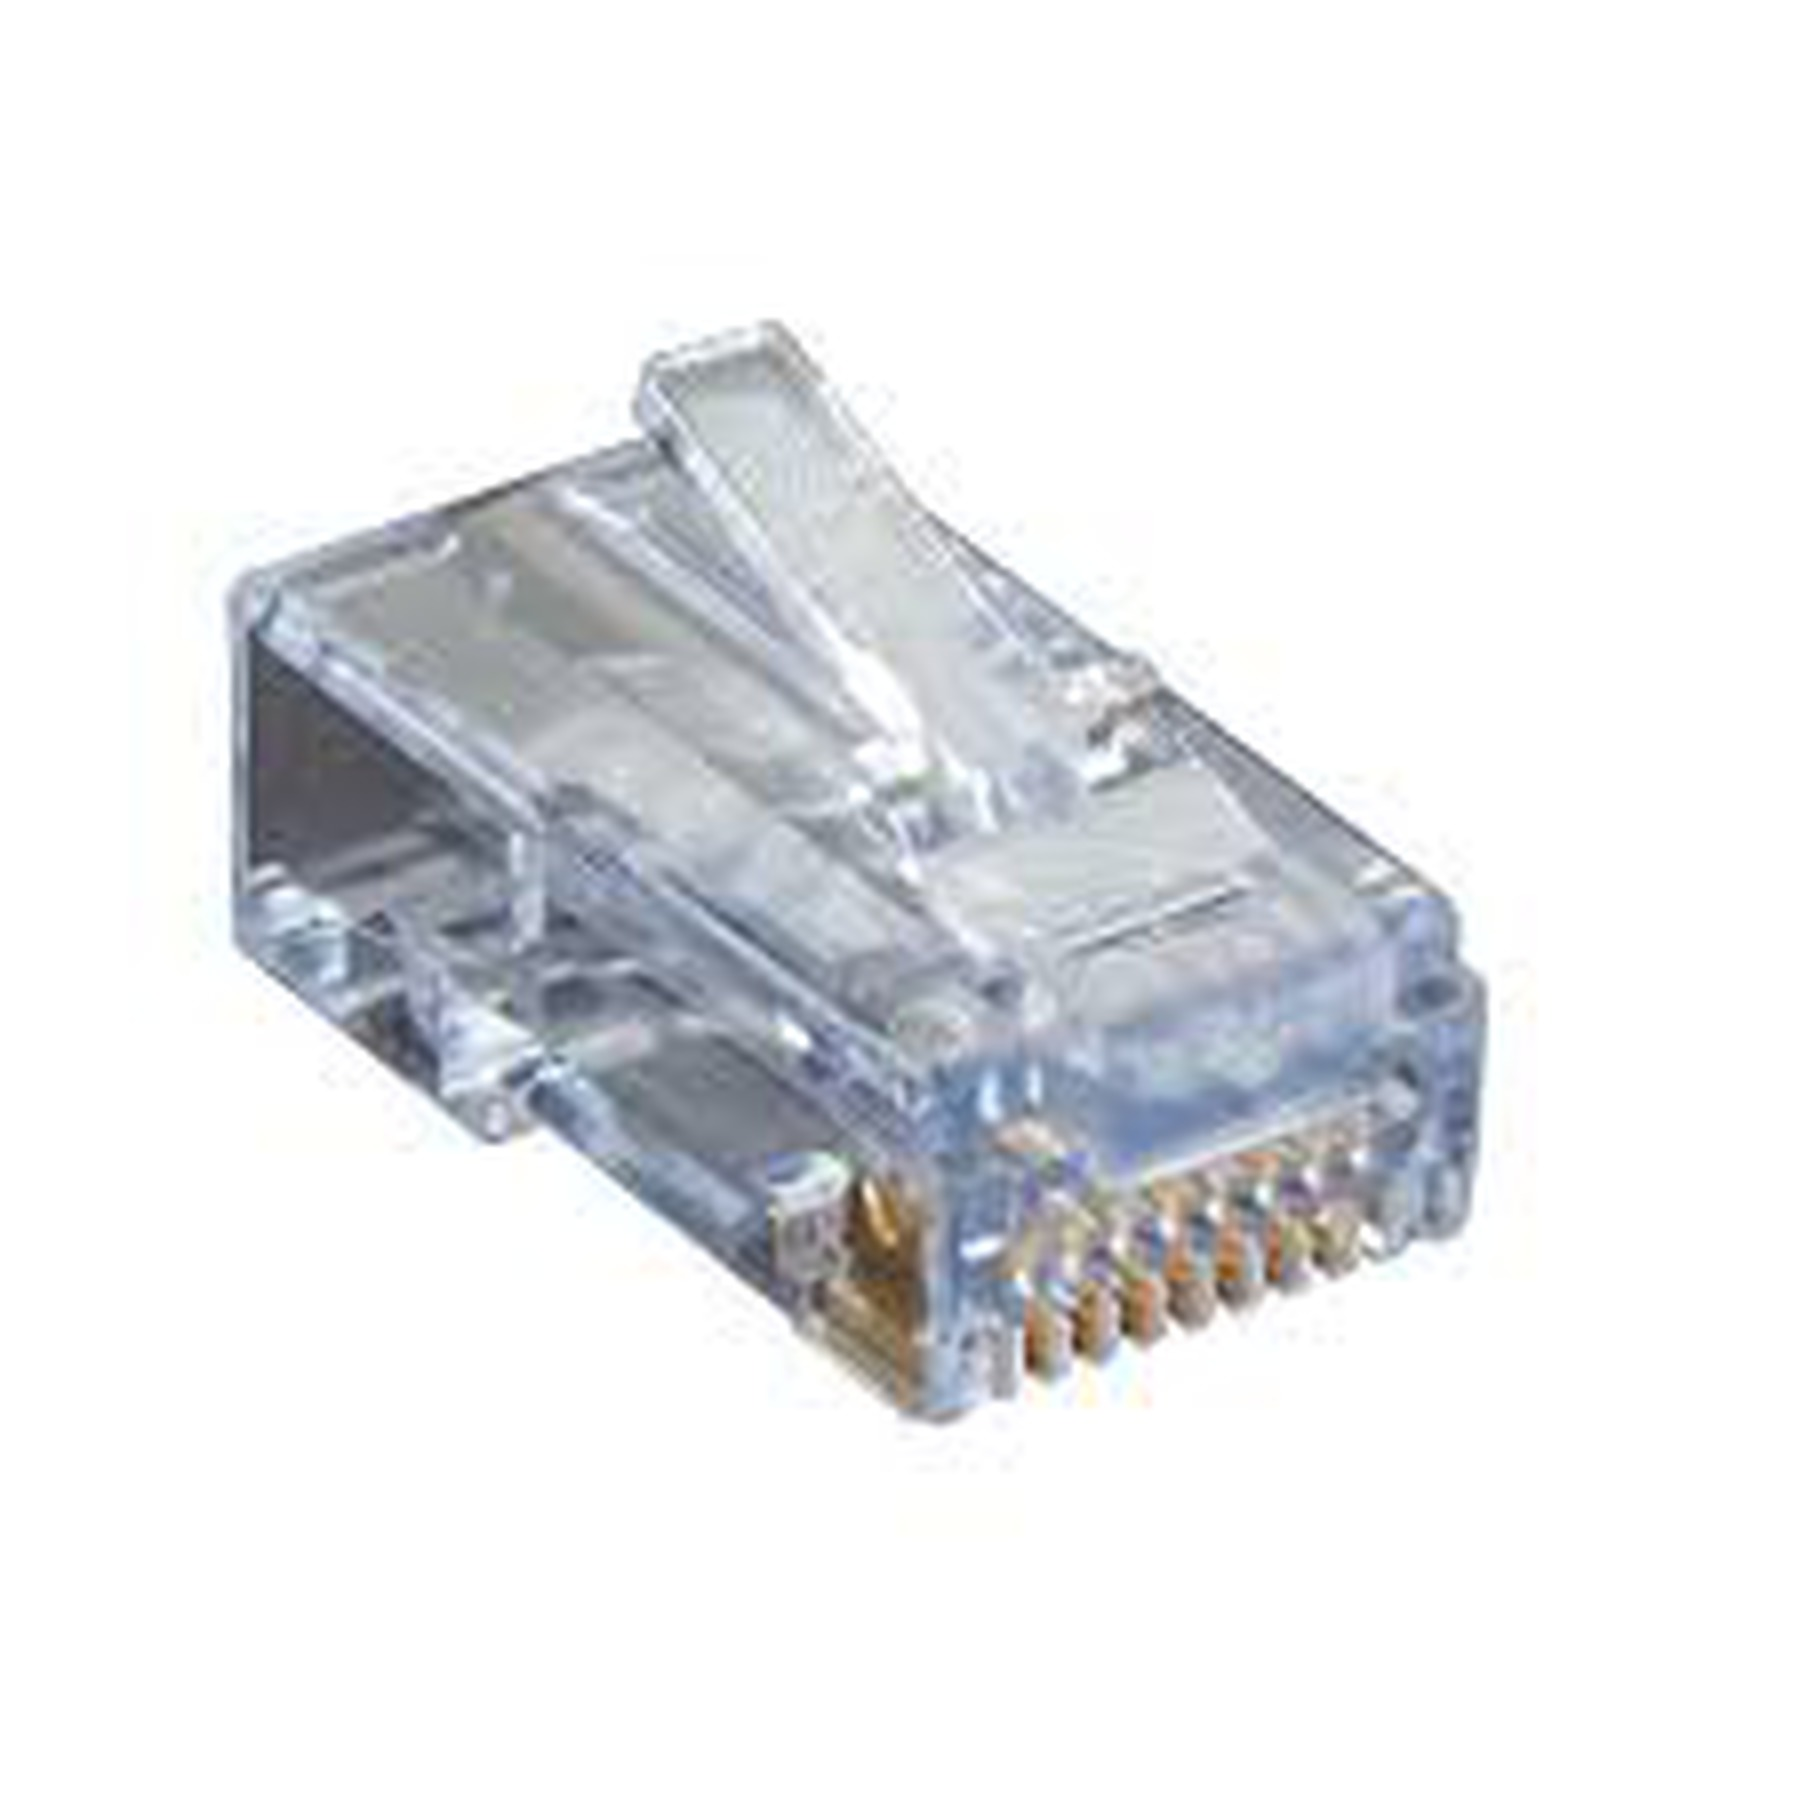 CAT6-RJ45-50PK Product Zoom